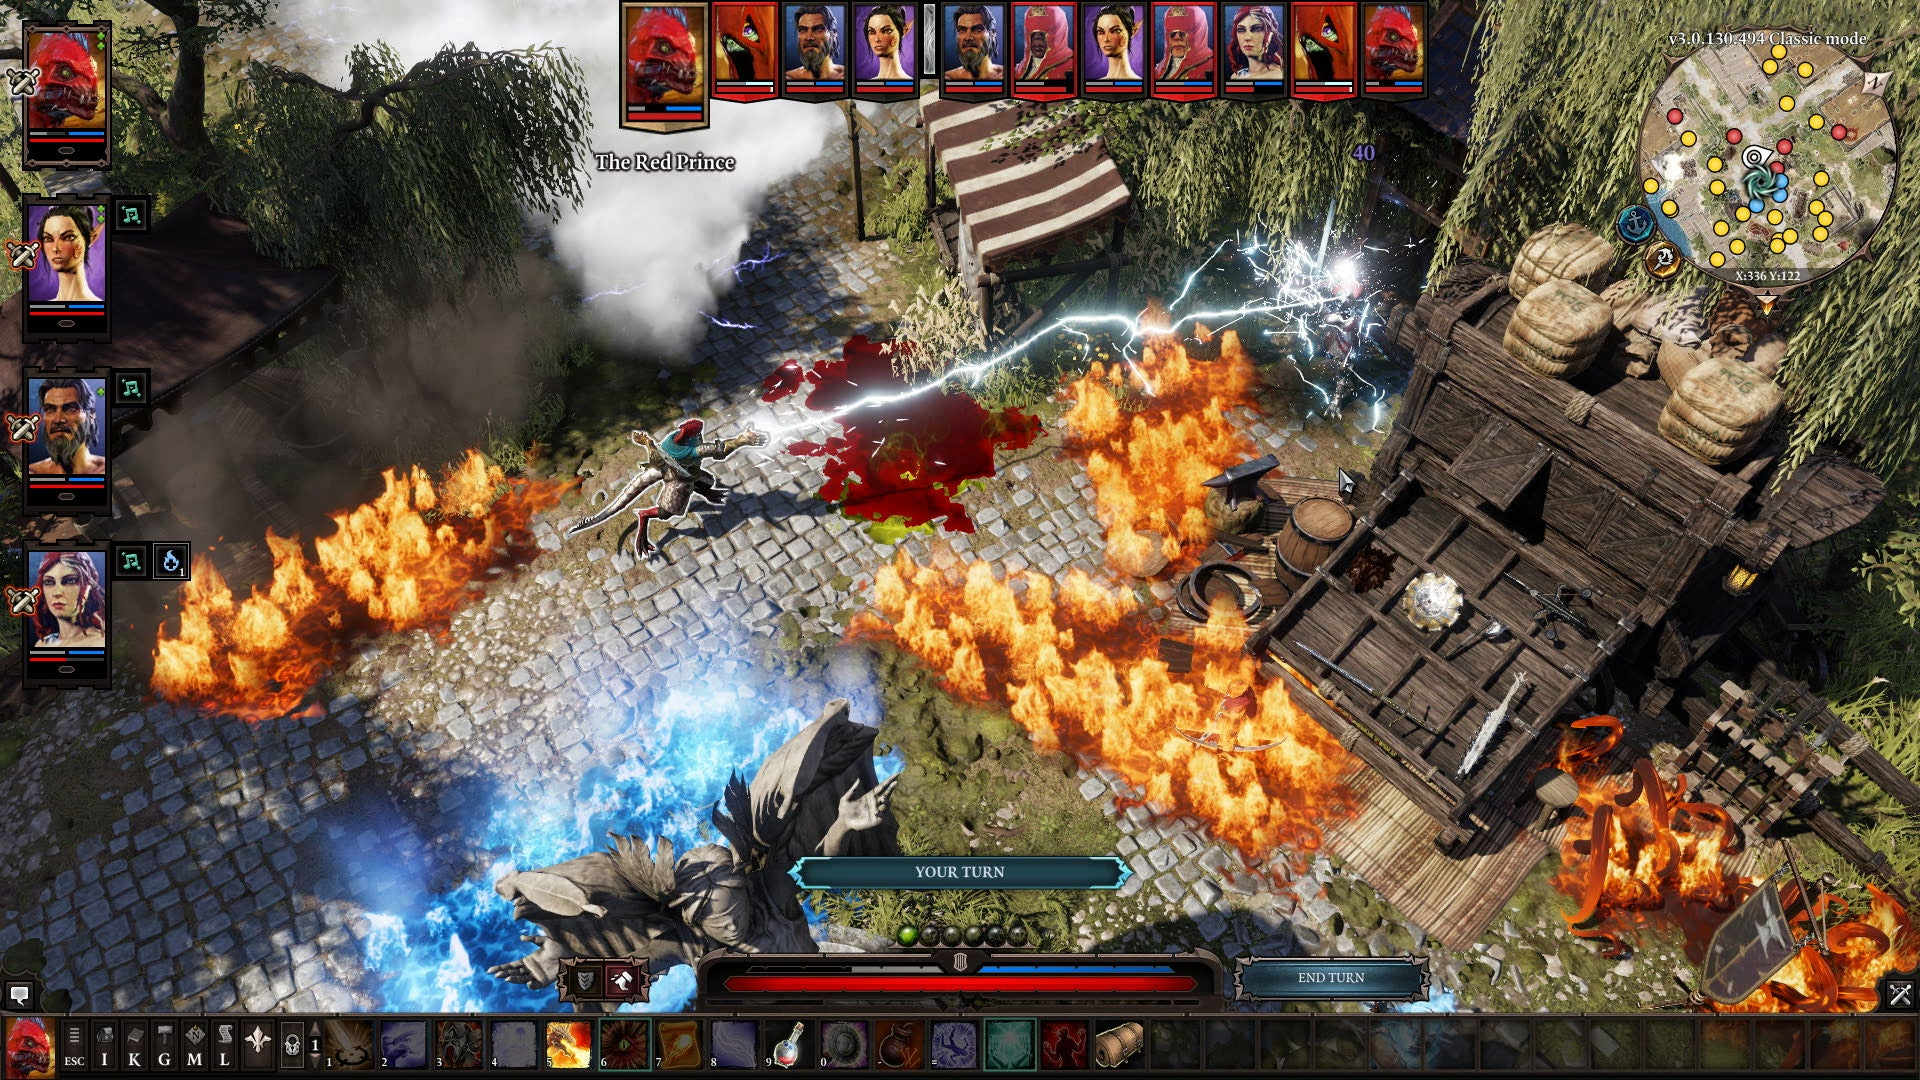 The best co-op PC games to play with your friends | PCWorld